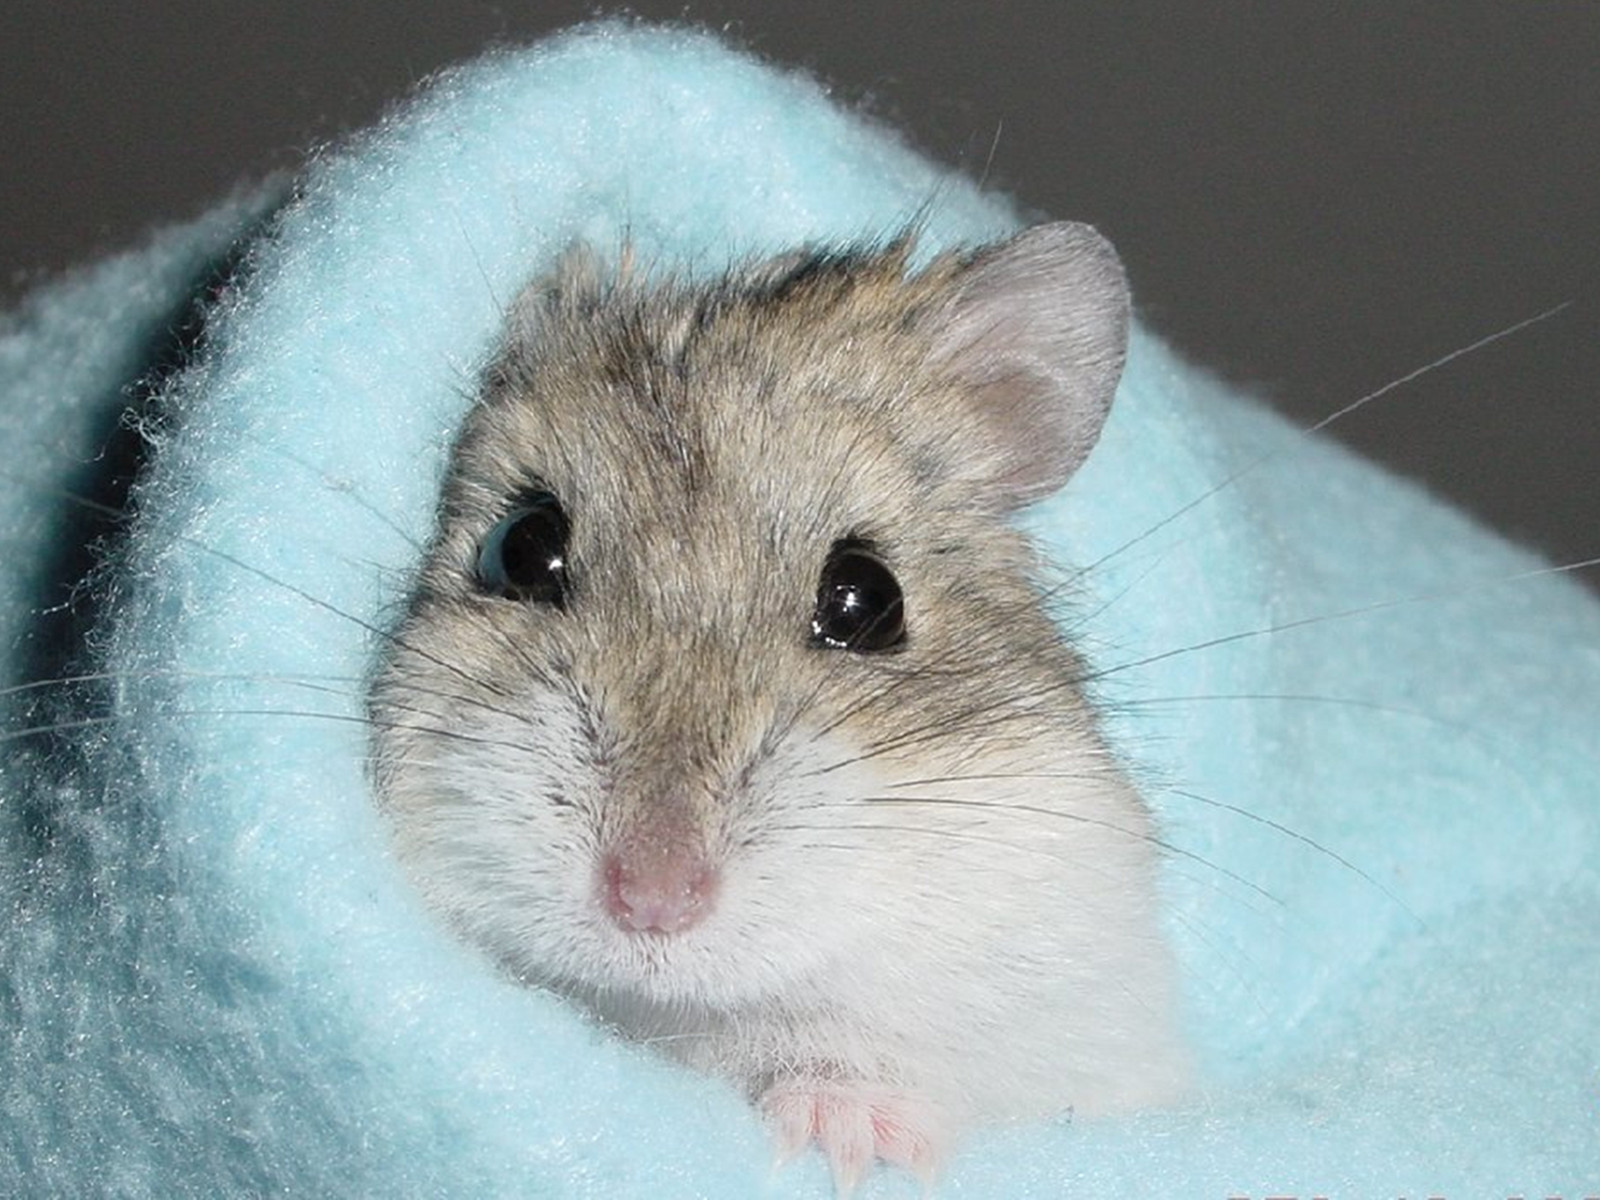 Cute Hamster 1600x1200 Wallpapers 1600x1200 Wallpapers Pictures 1600x1200